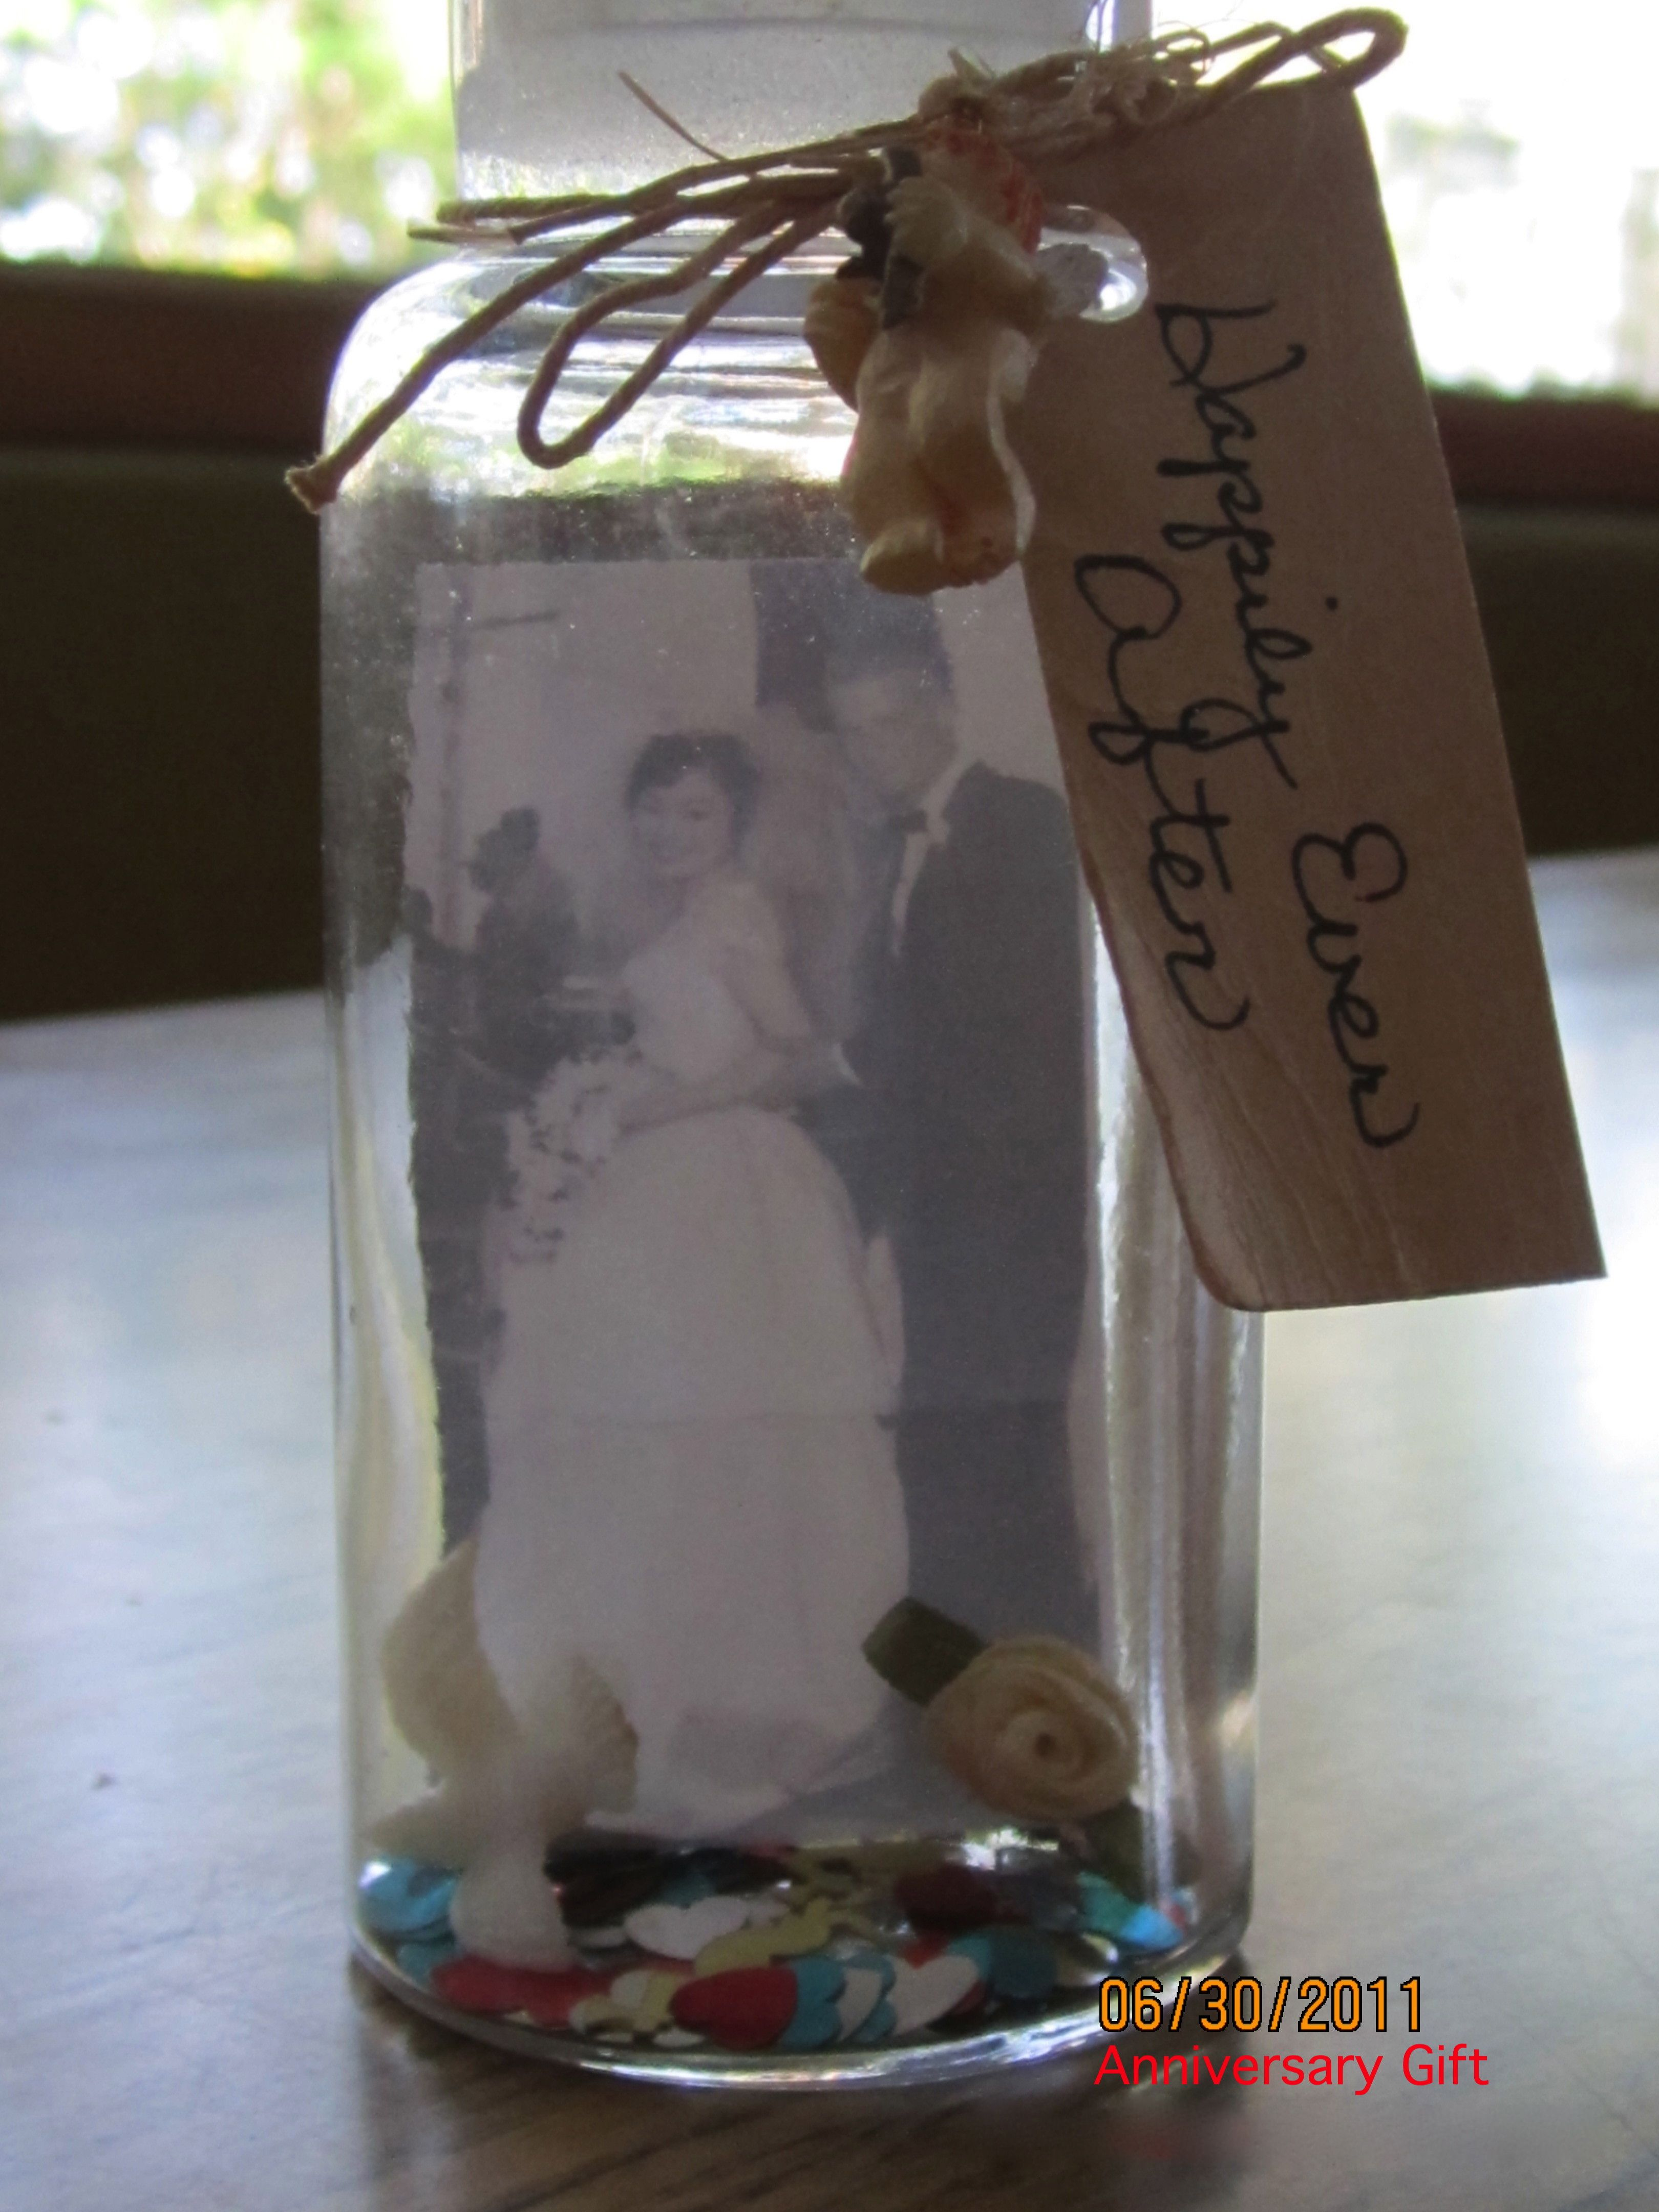 50th Wedding Anniversary Gifts Pinterest : Anniversary Gifts